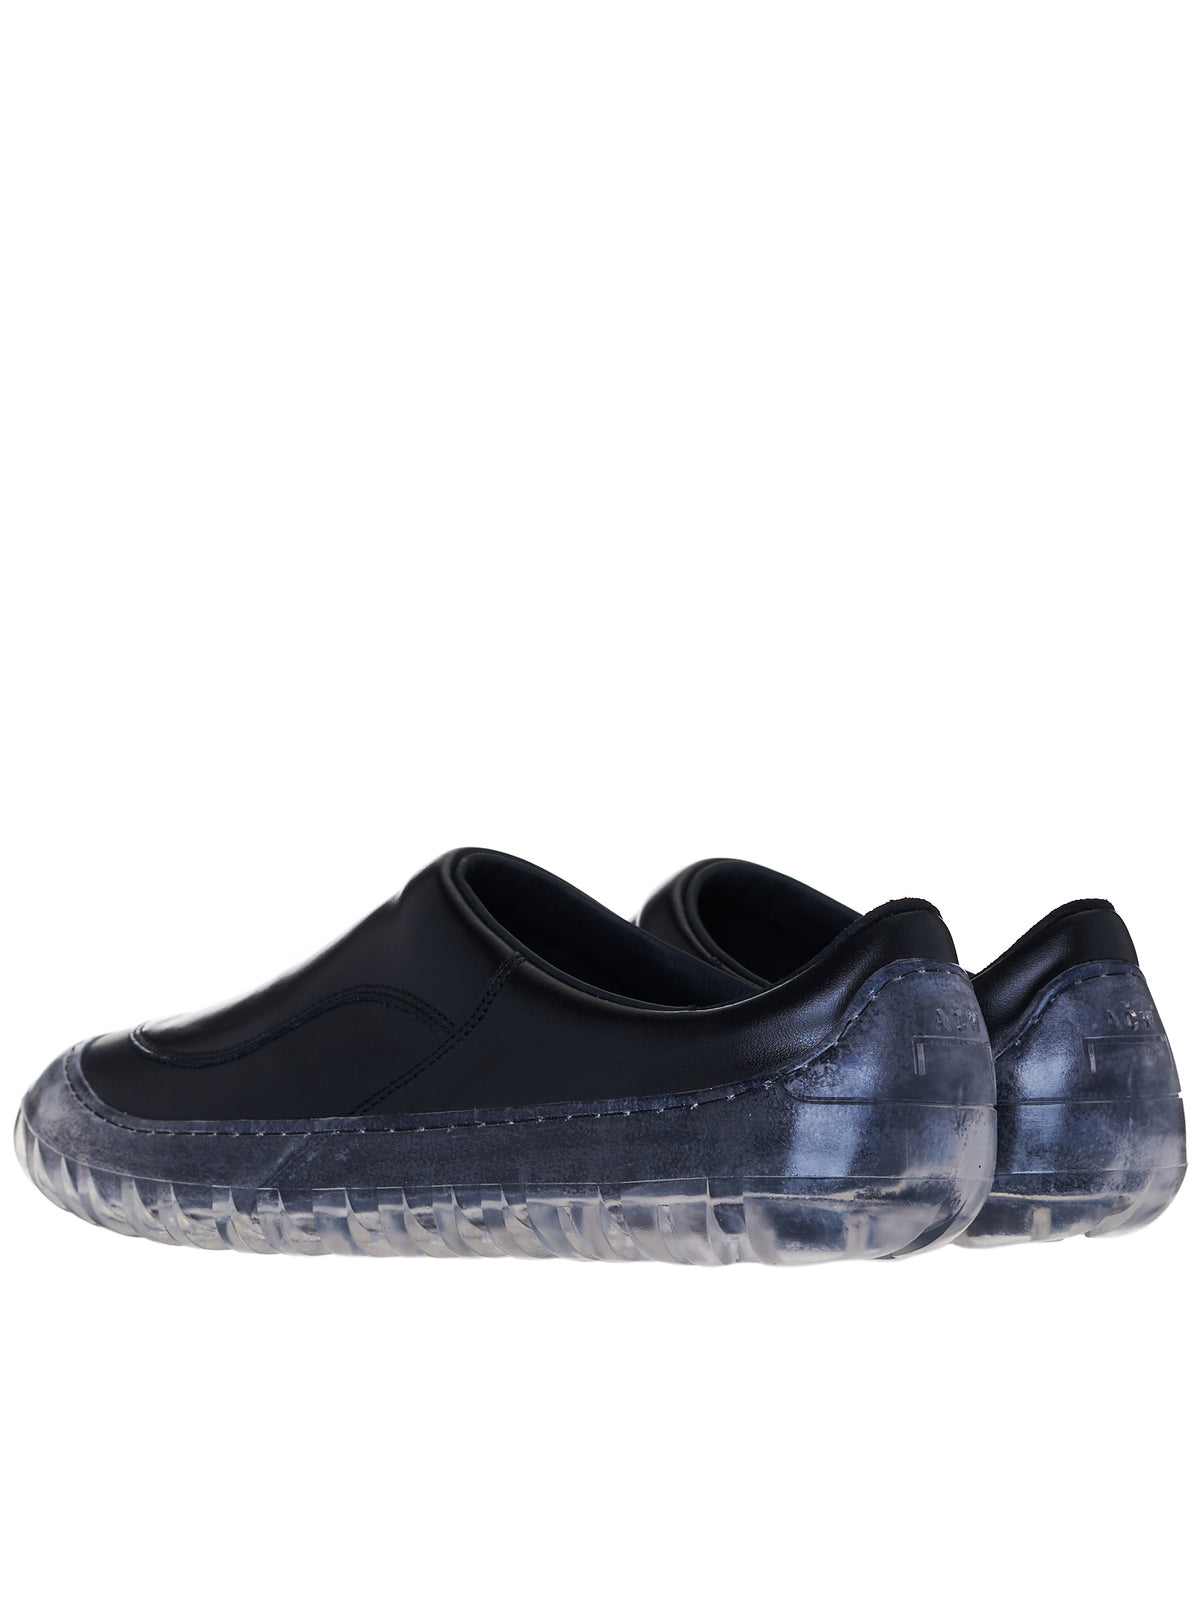 Clear Sole Leather Loafers (UF015-BLACK)